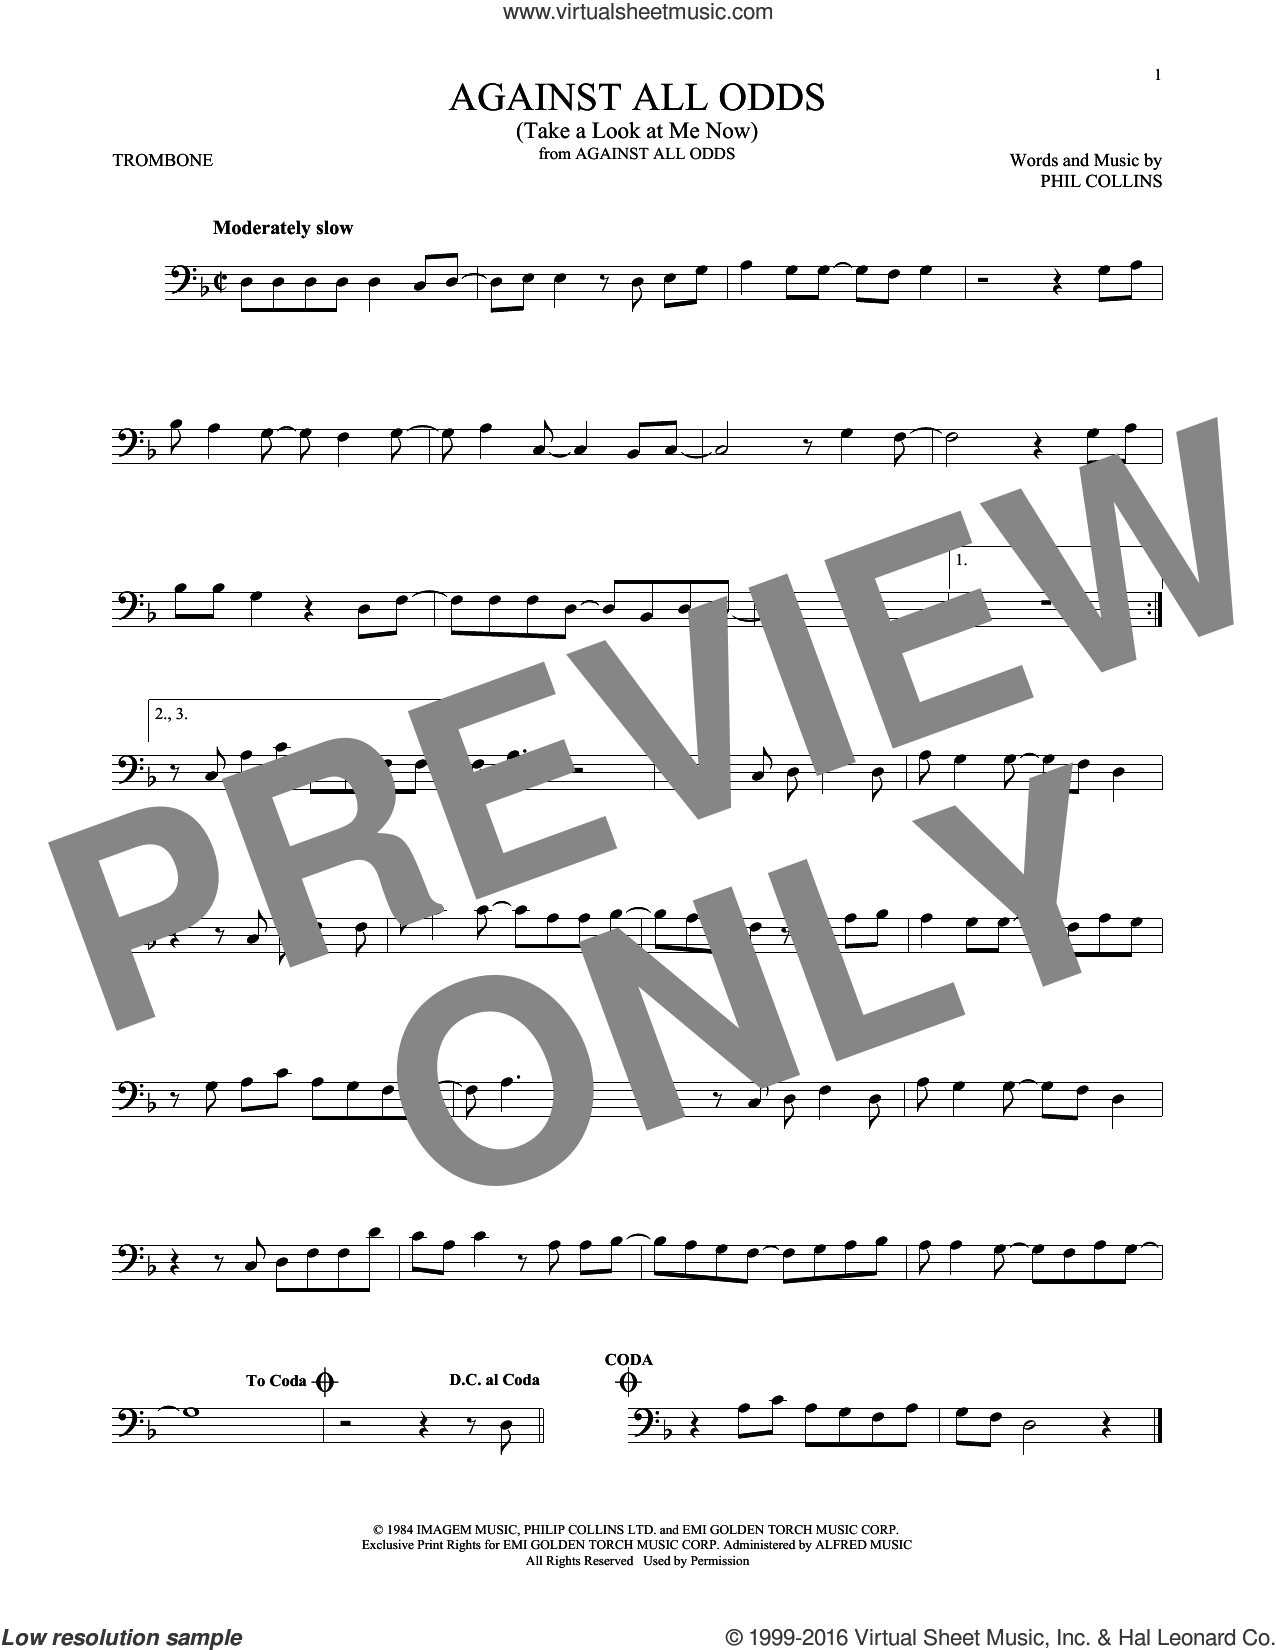 Against All Odds (Take A Look At Me Now) sheet music for trombone solo by Phil Collins. Score Image Preview.